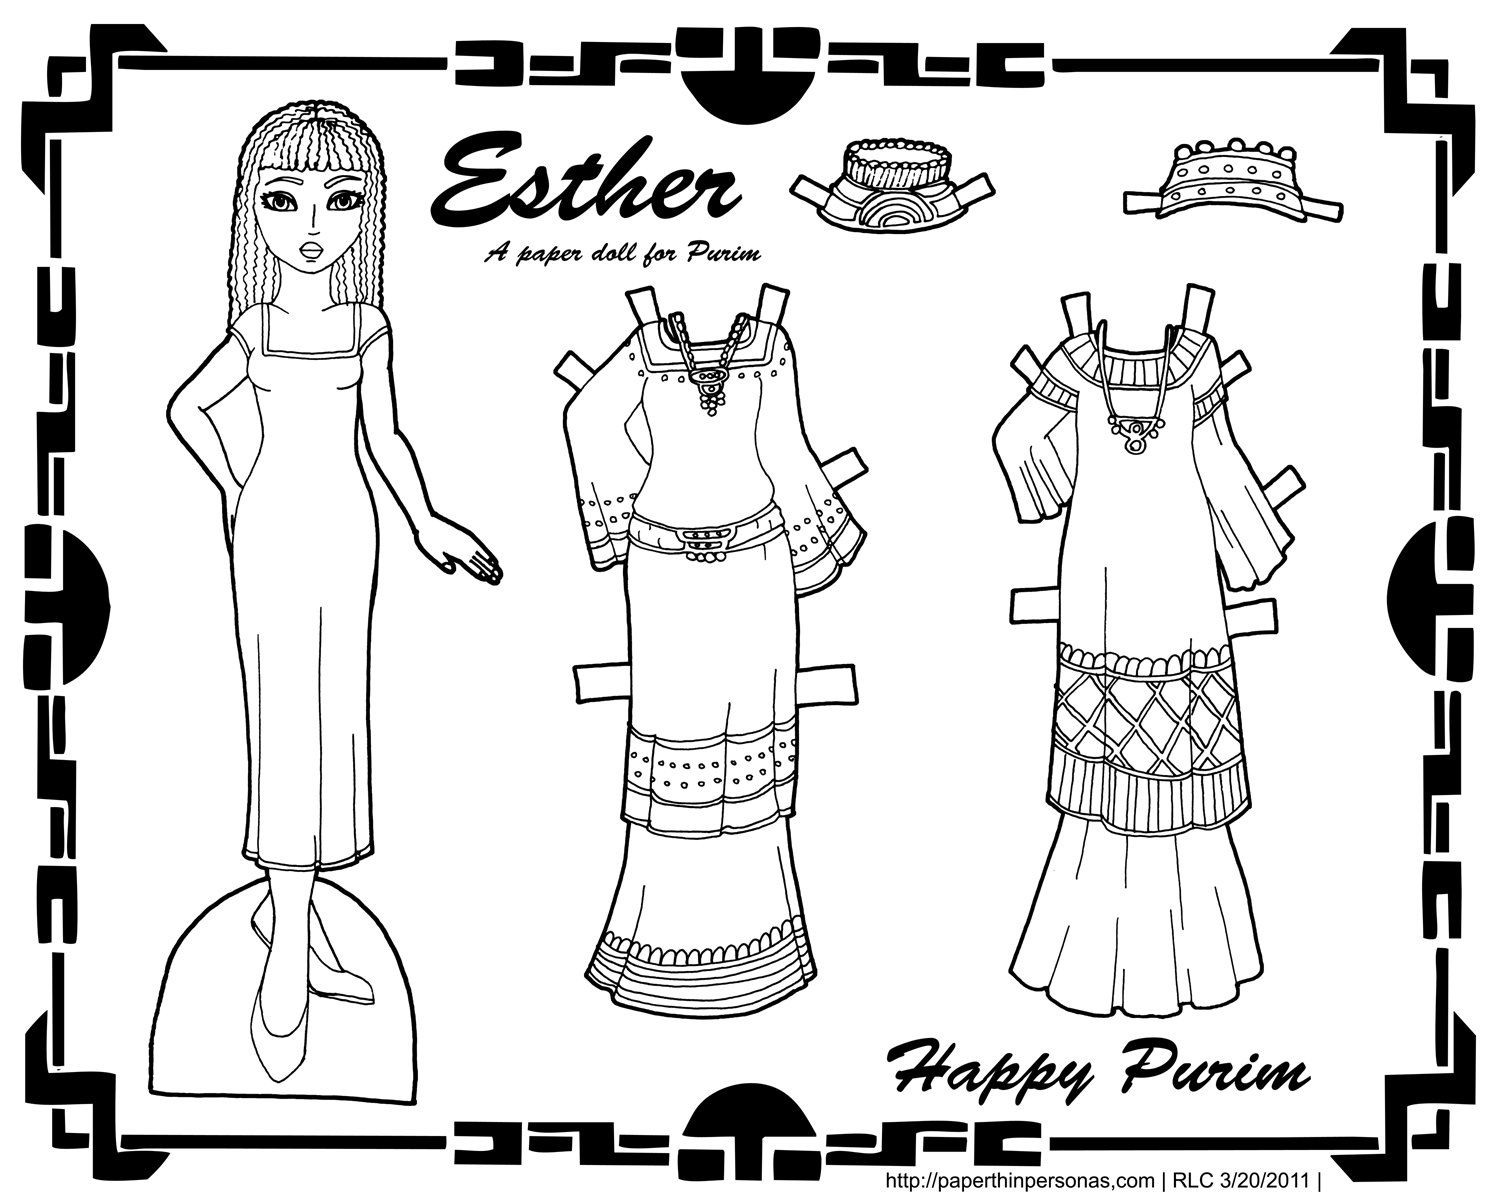 Pin By Olga Parkina On Paper Doll 20 Paper Dolls Doll Family Bible Coloring Pages